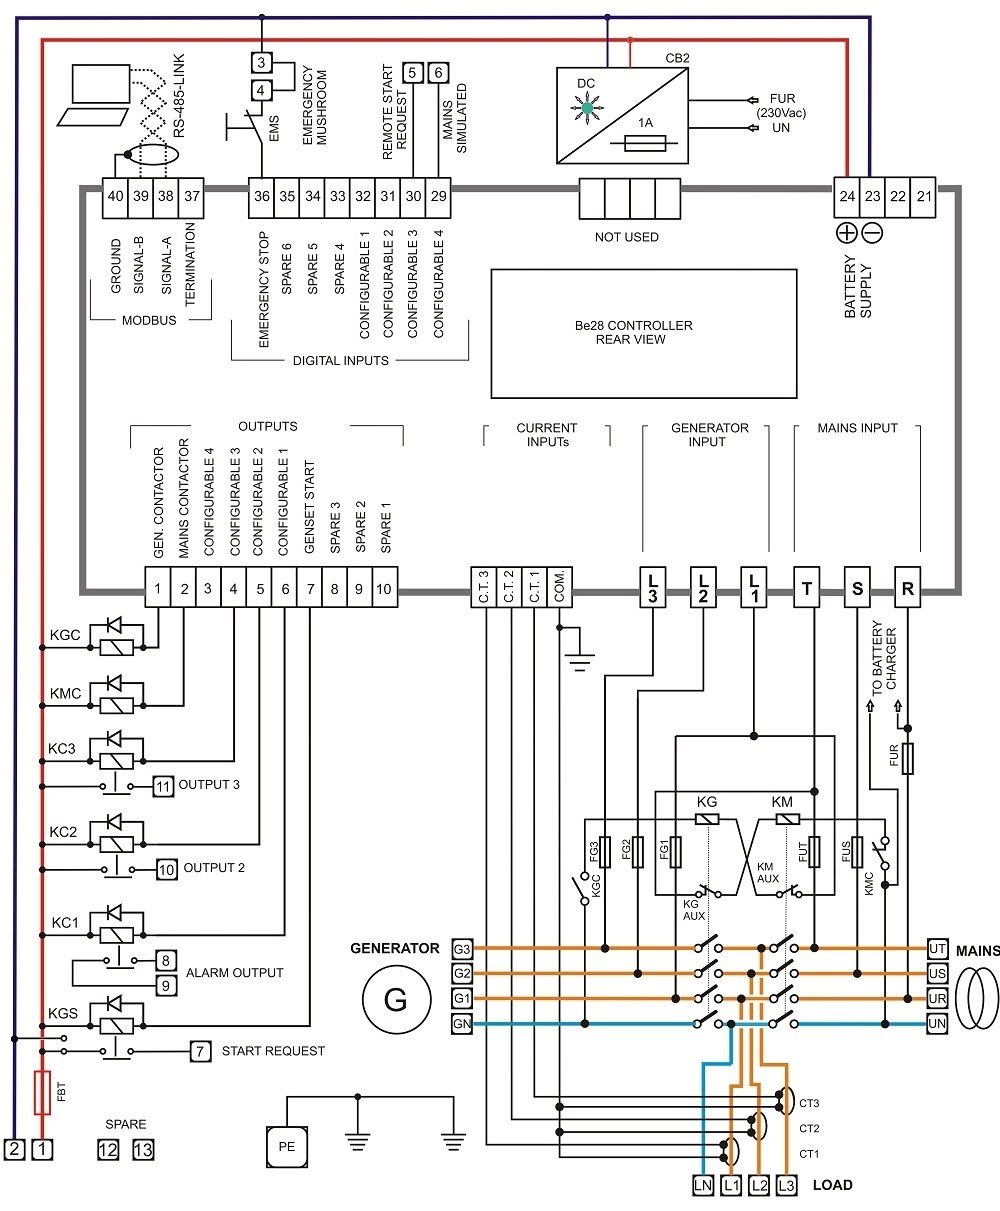 Generac Ats Wiring Diagram  Wiring  Wiring Diagram Images